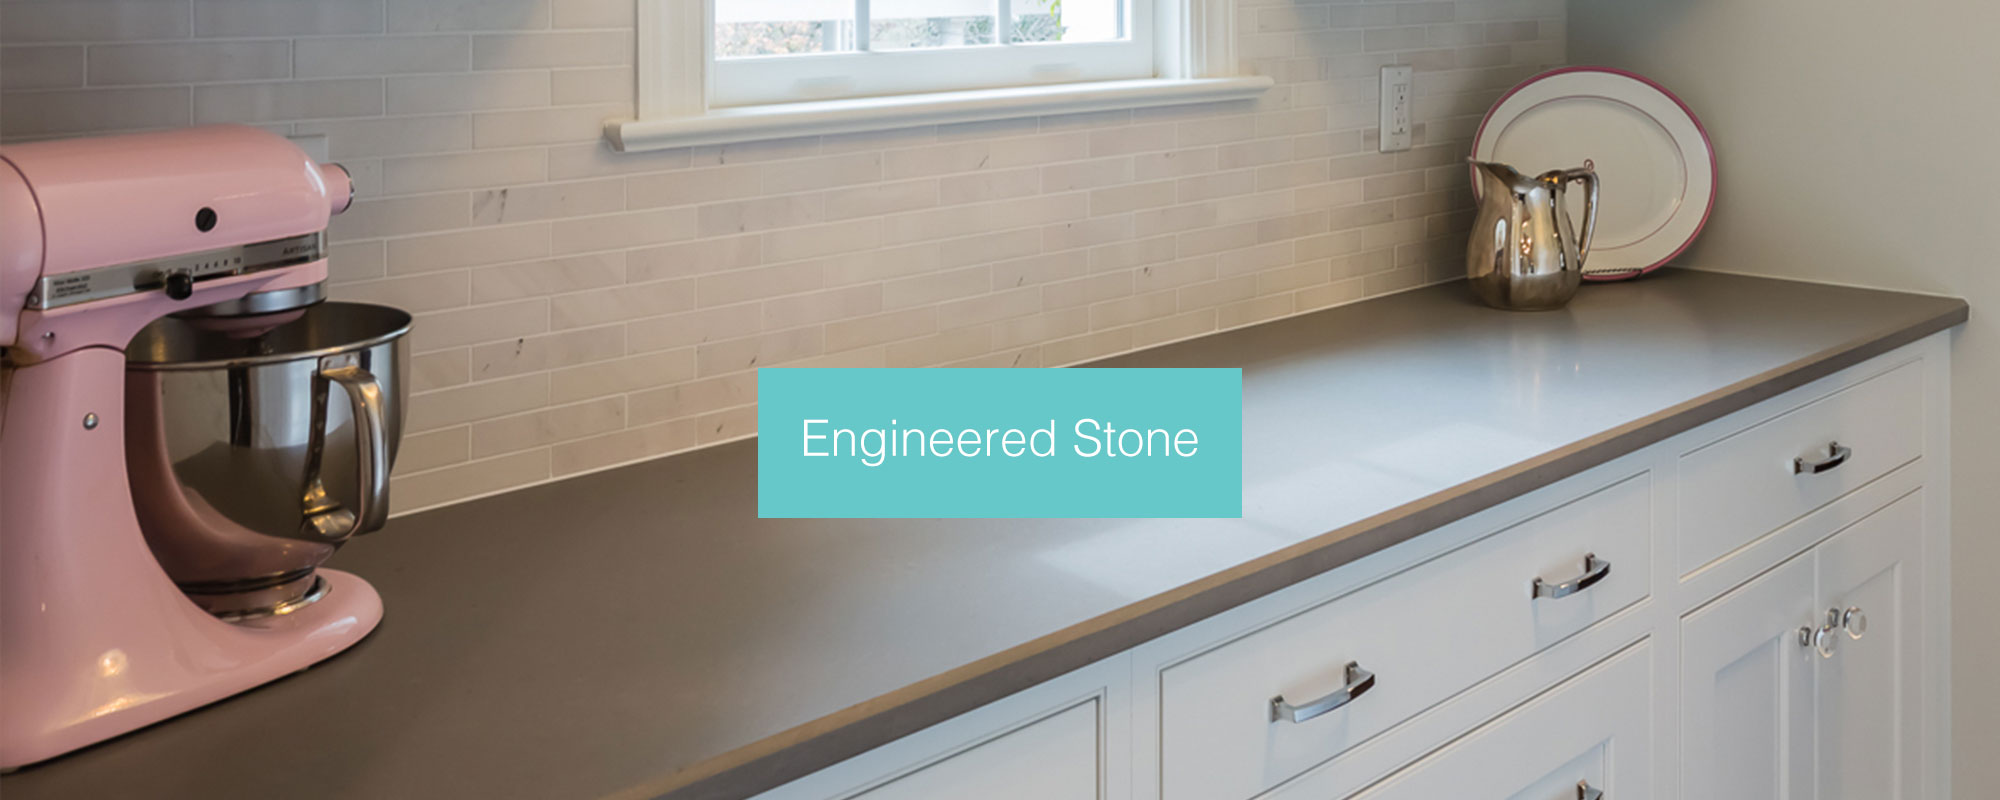 Engineered Stone Countertops, Commonly Referred To As U201cquartzu201d, Are A  Composite Material Made With Crushed Natural Stone Held Together With A  Man Made ...